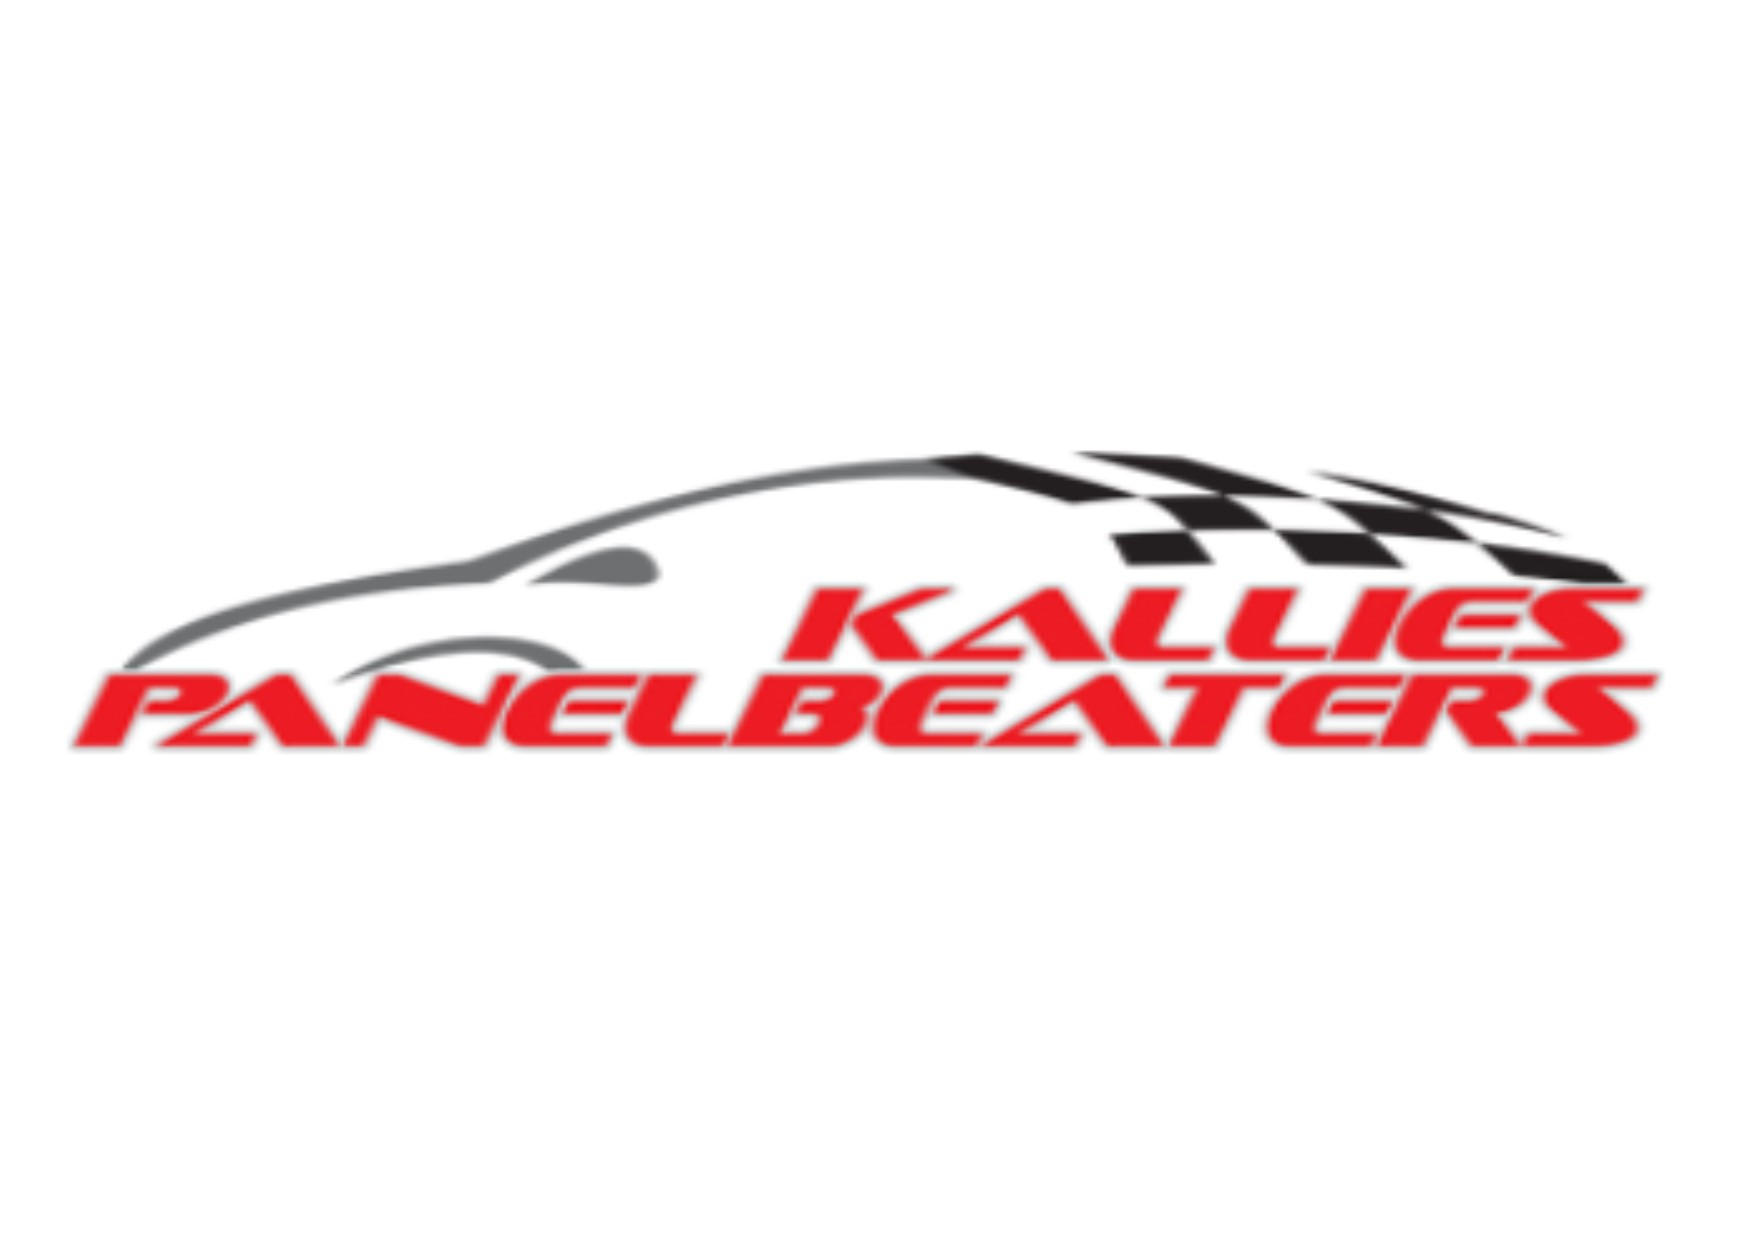 Logo of Kallies Paneelkloppers